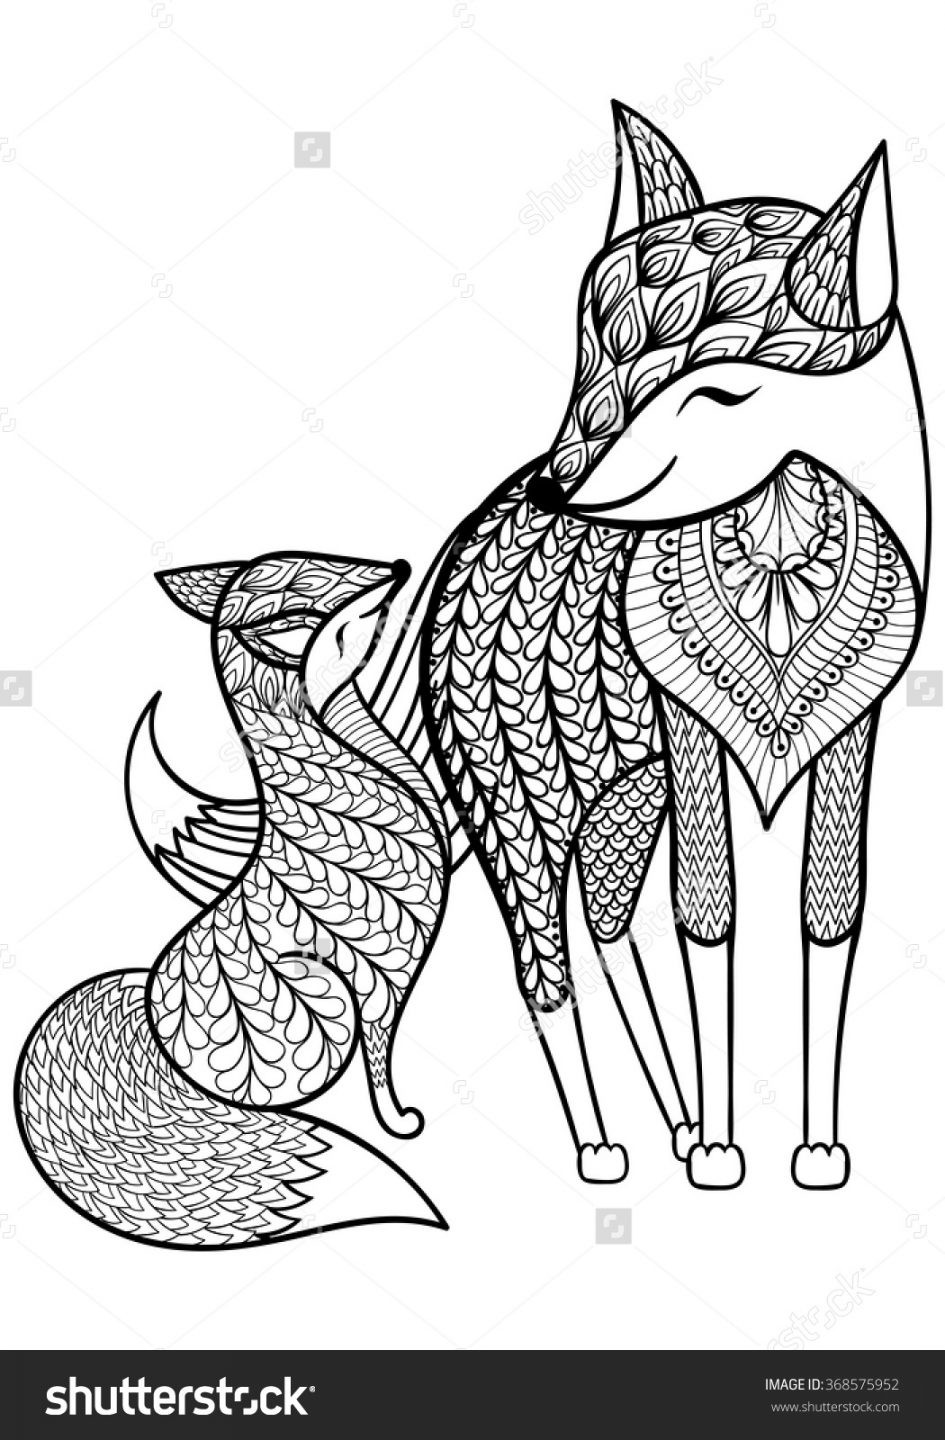 945x1440 Scarce Baby Fox Coloring Pages Imposing Design Zentangle Vector